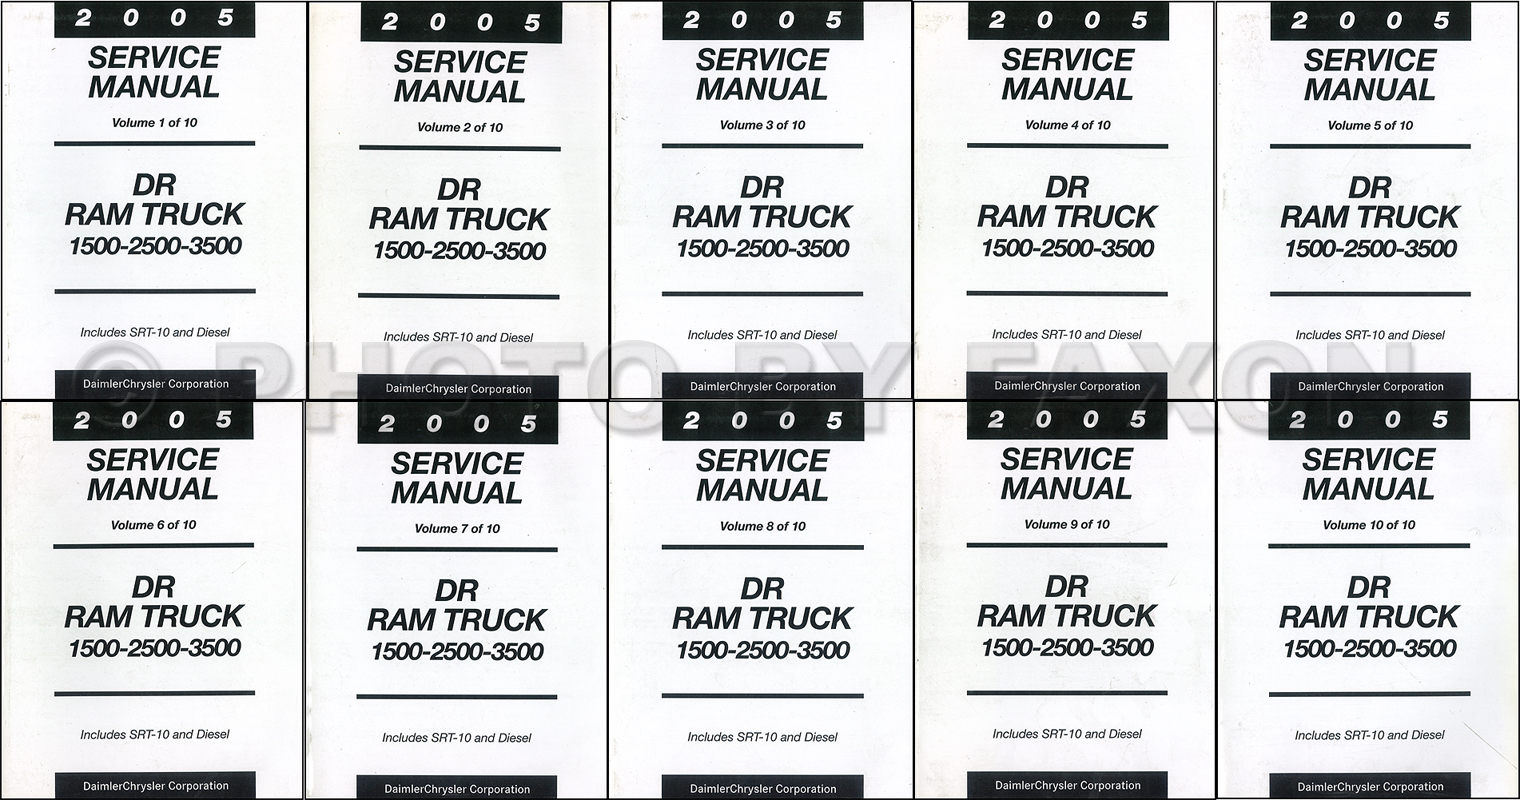 2005 dodge ram truck repair shop manual 10 vol set factory reprint rh faxonautoliterature com 2007 dodge ram 2500 repair manual 2007 dodge ram repair manual